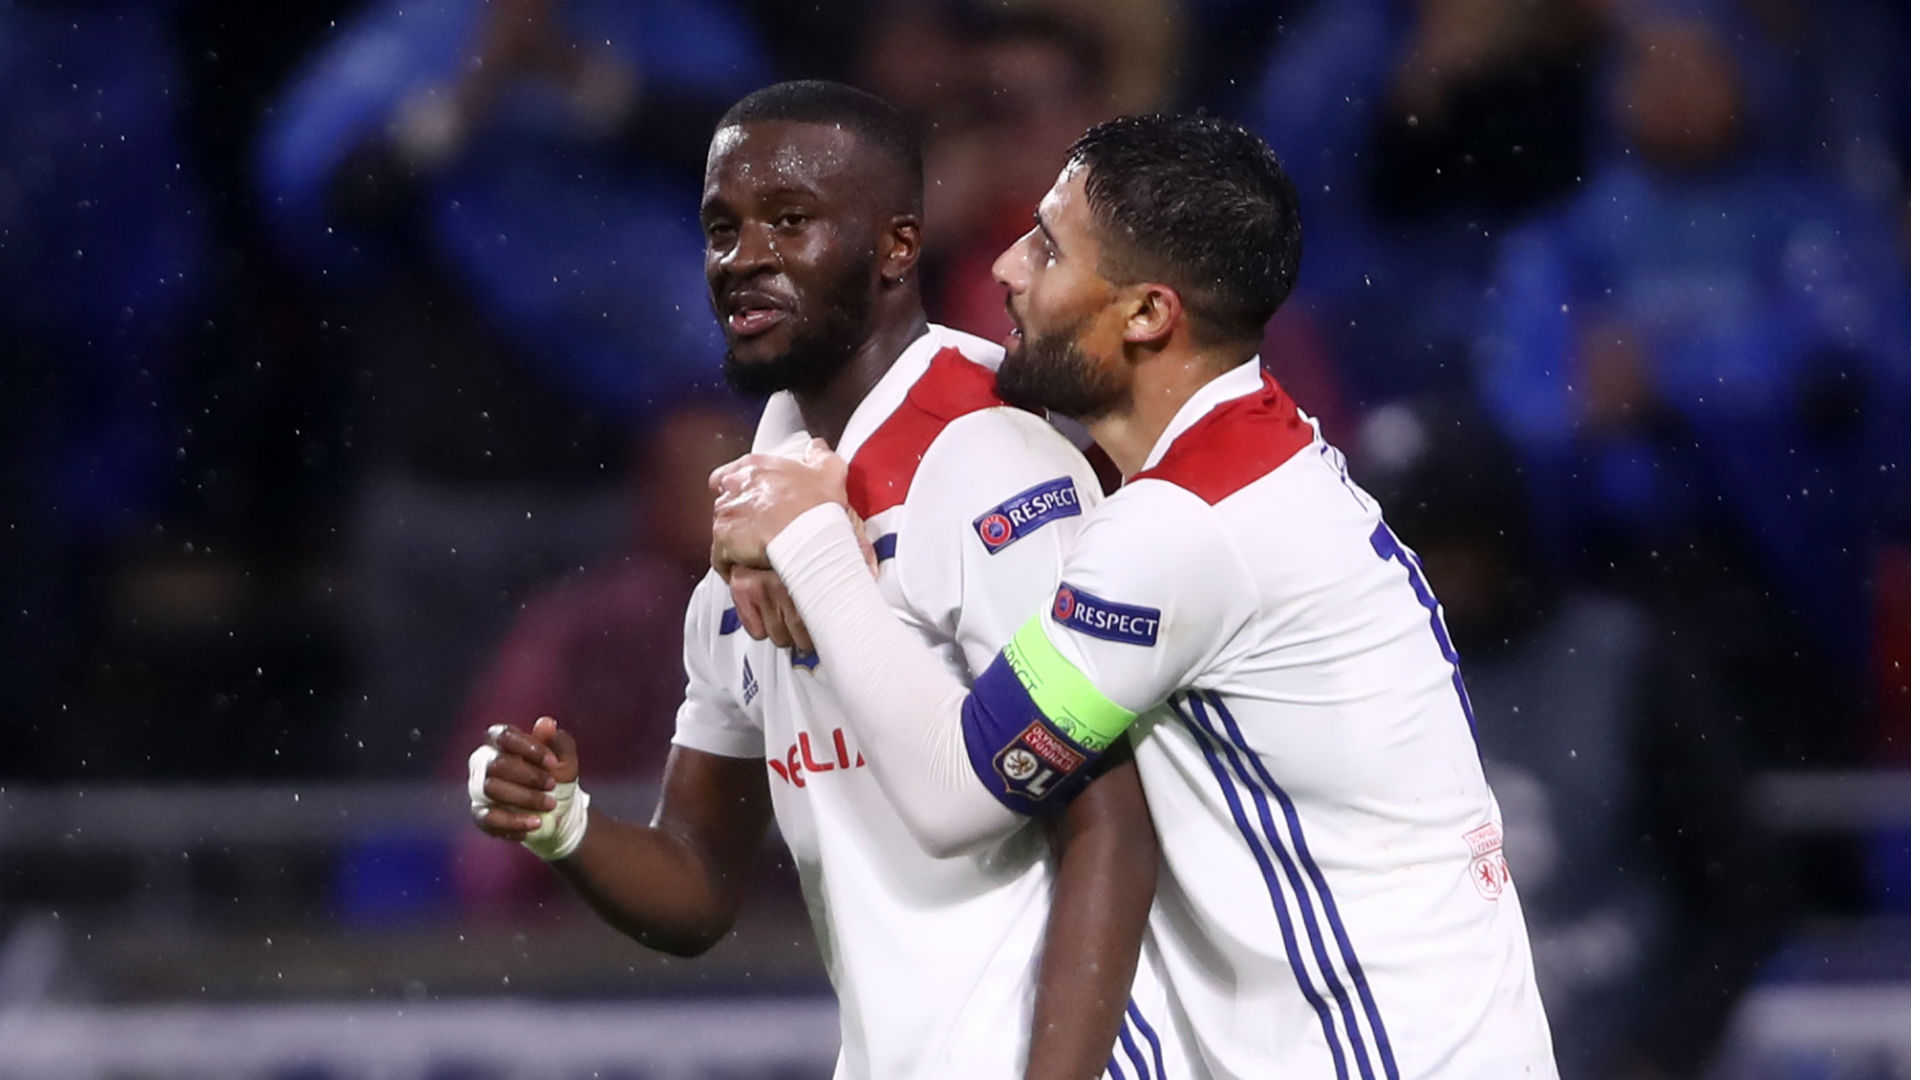 Lyon midfielder Tanguy Ndombele has been linked with a move Juventus and has been likened to Paul Pogba by Bruno Genesio.